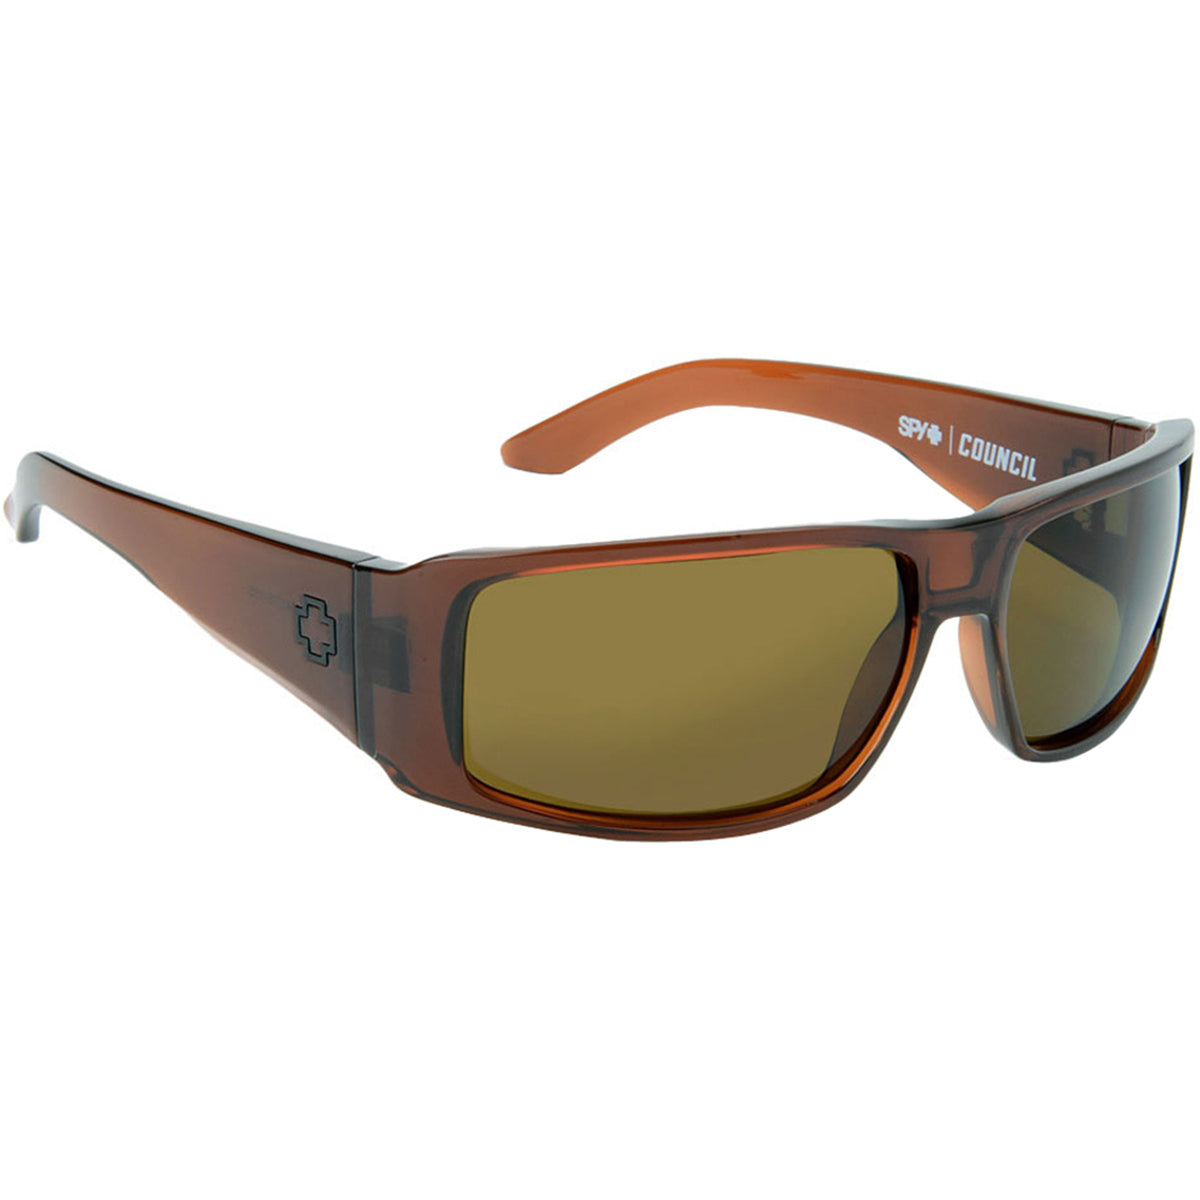 1cd5976466 Spy Optic Council Adult Lifestyle Sunglasses – Motorcycle Gear ...